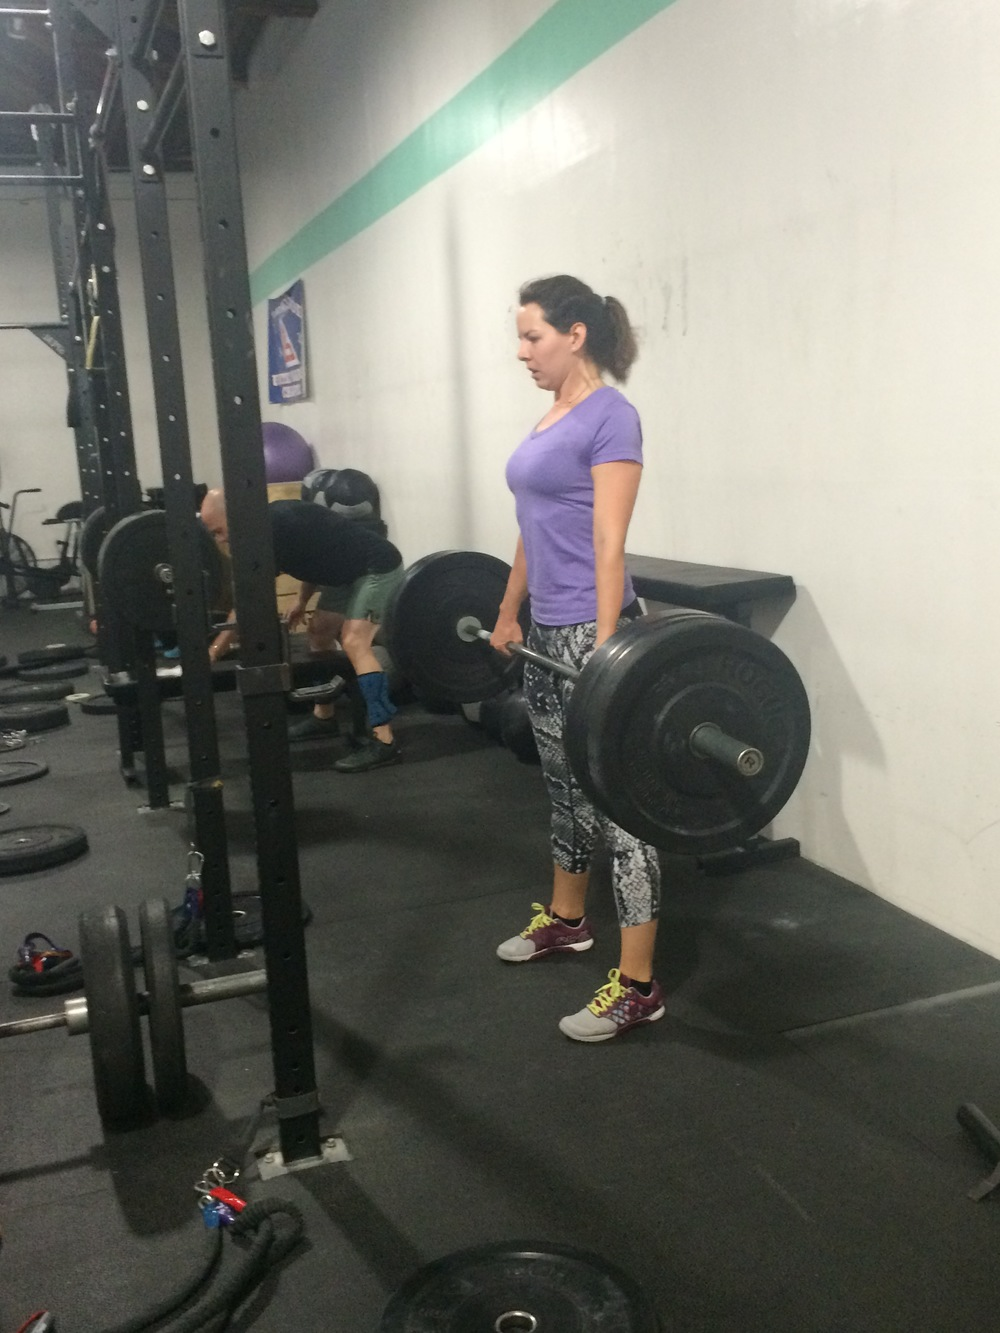 Johnyne, PRing her deadlift on her first day trying SWOD!